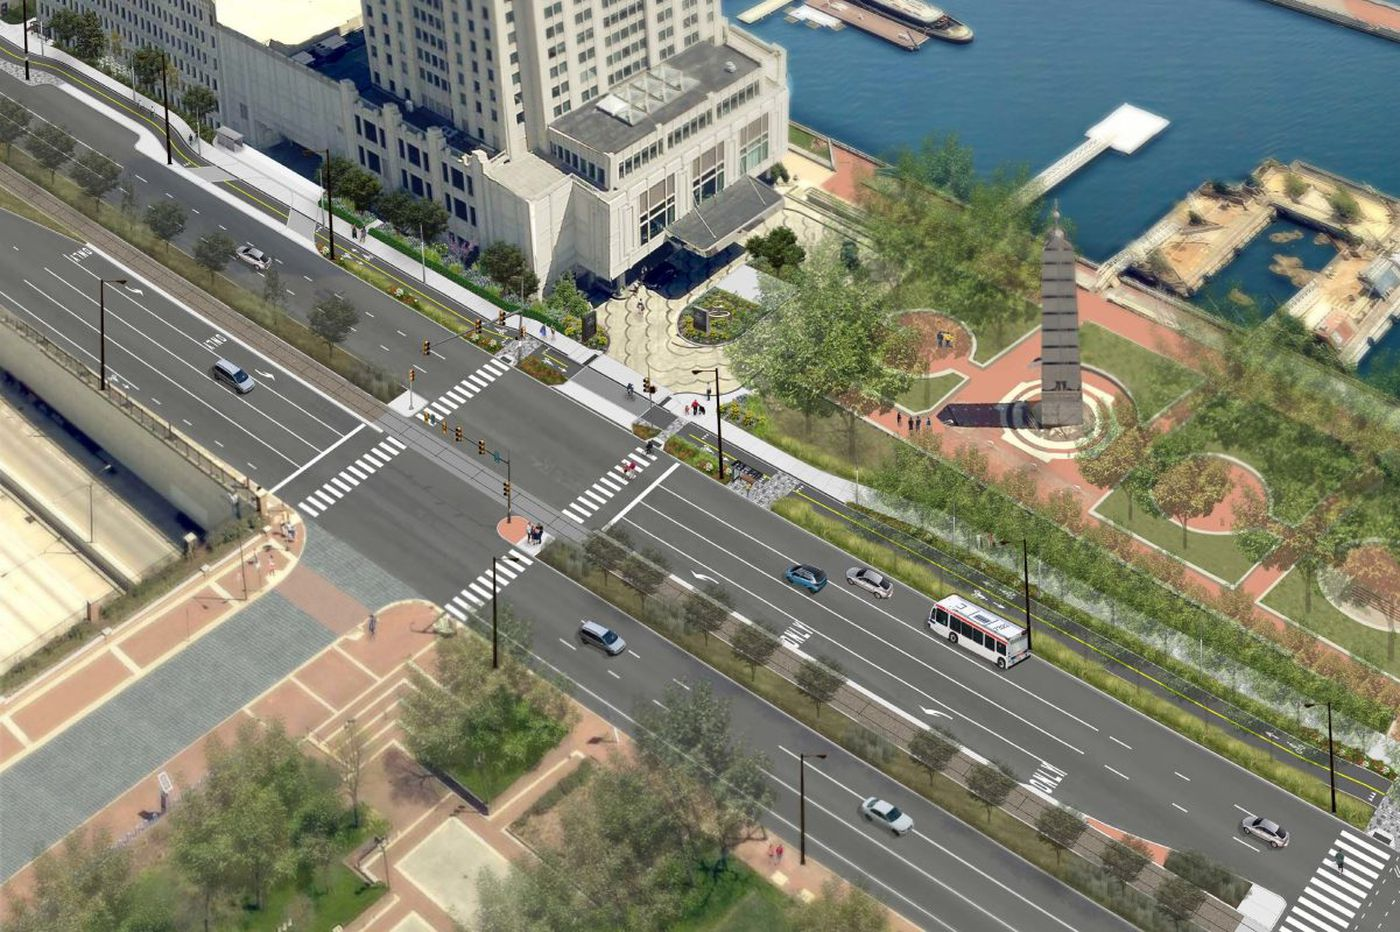 Designs to be aired for middle segment of central Delaware River waterfront trail